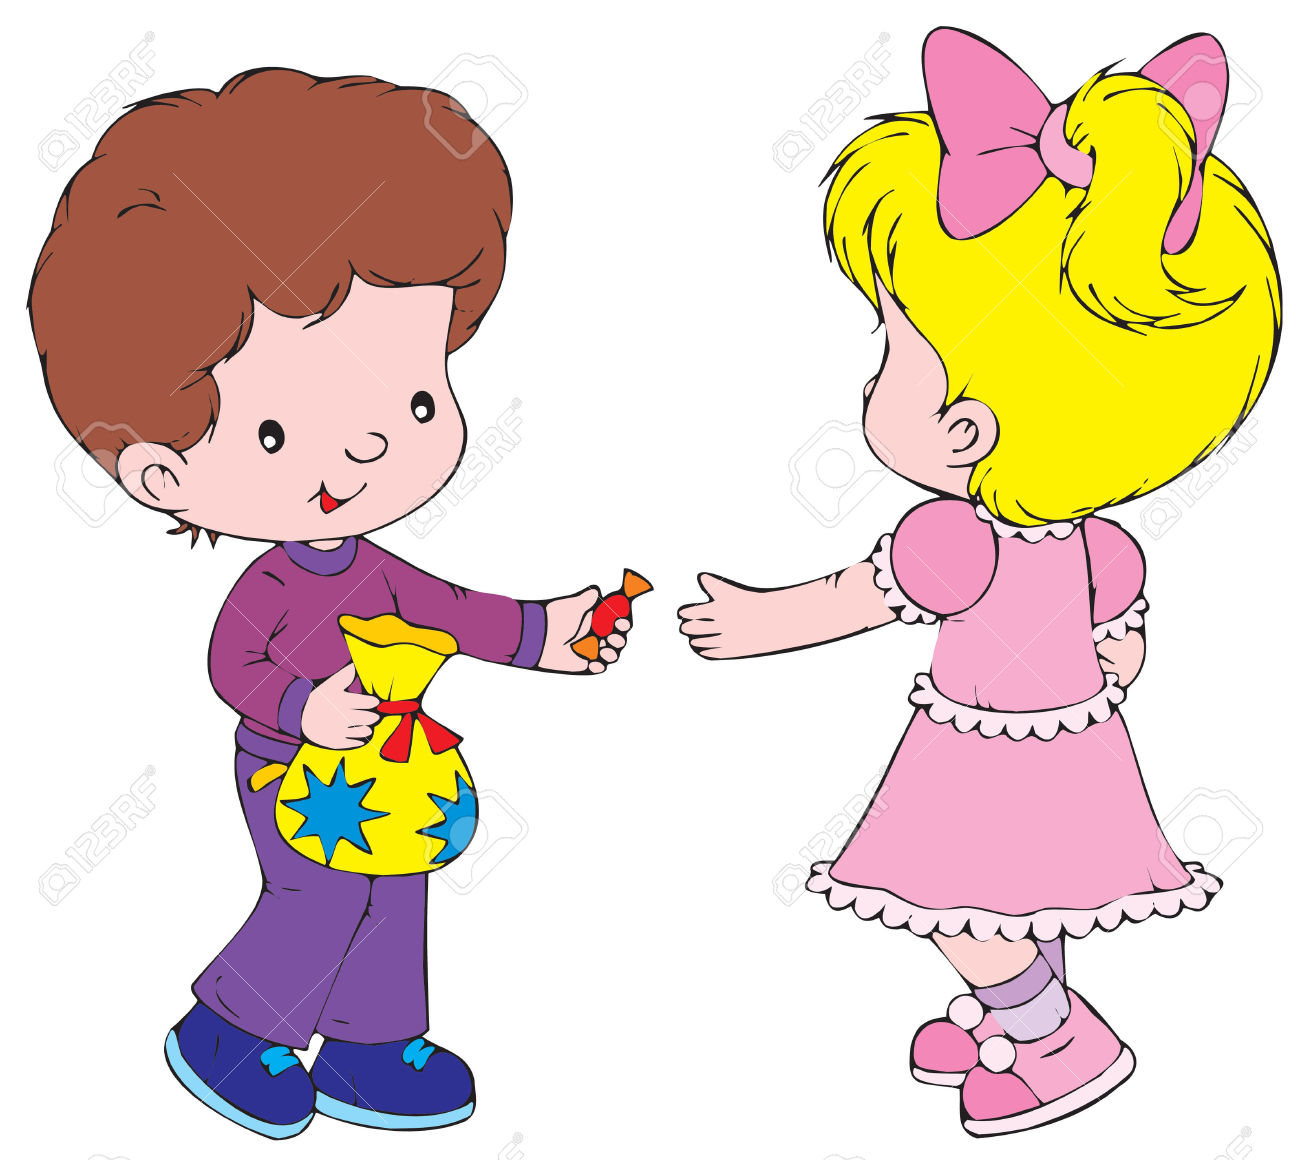 Sharing clipart. Station